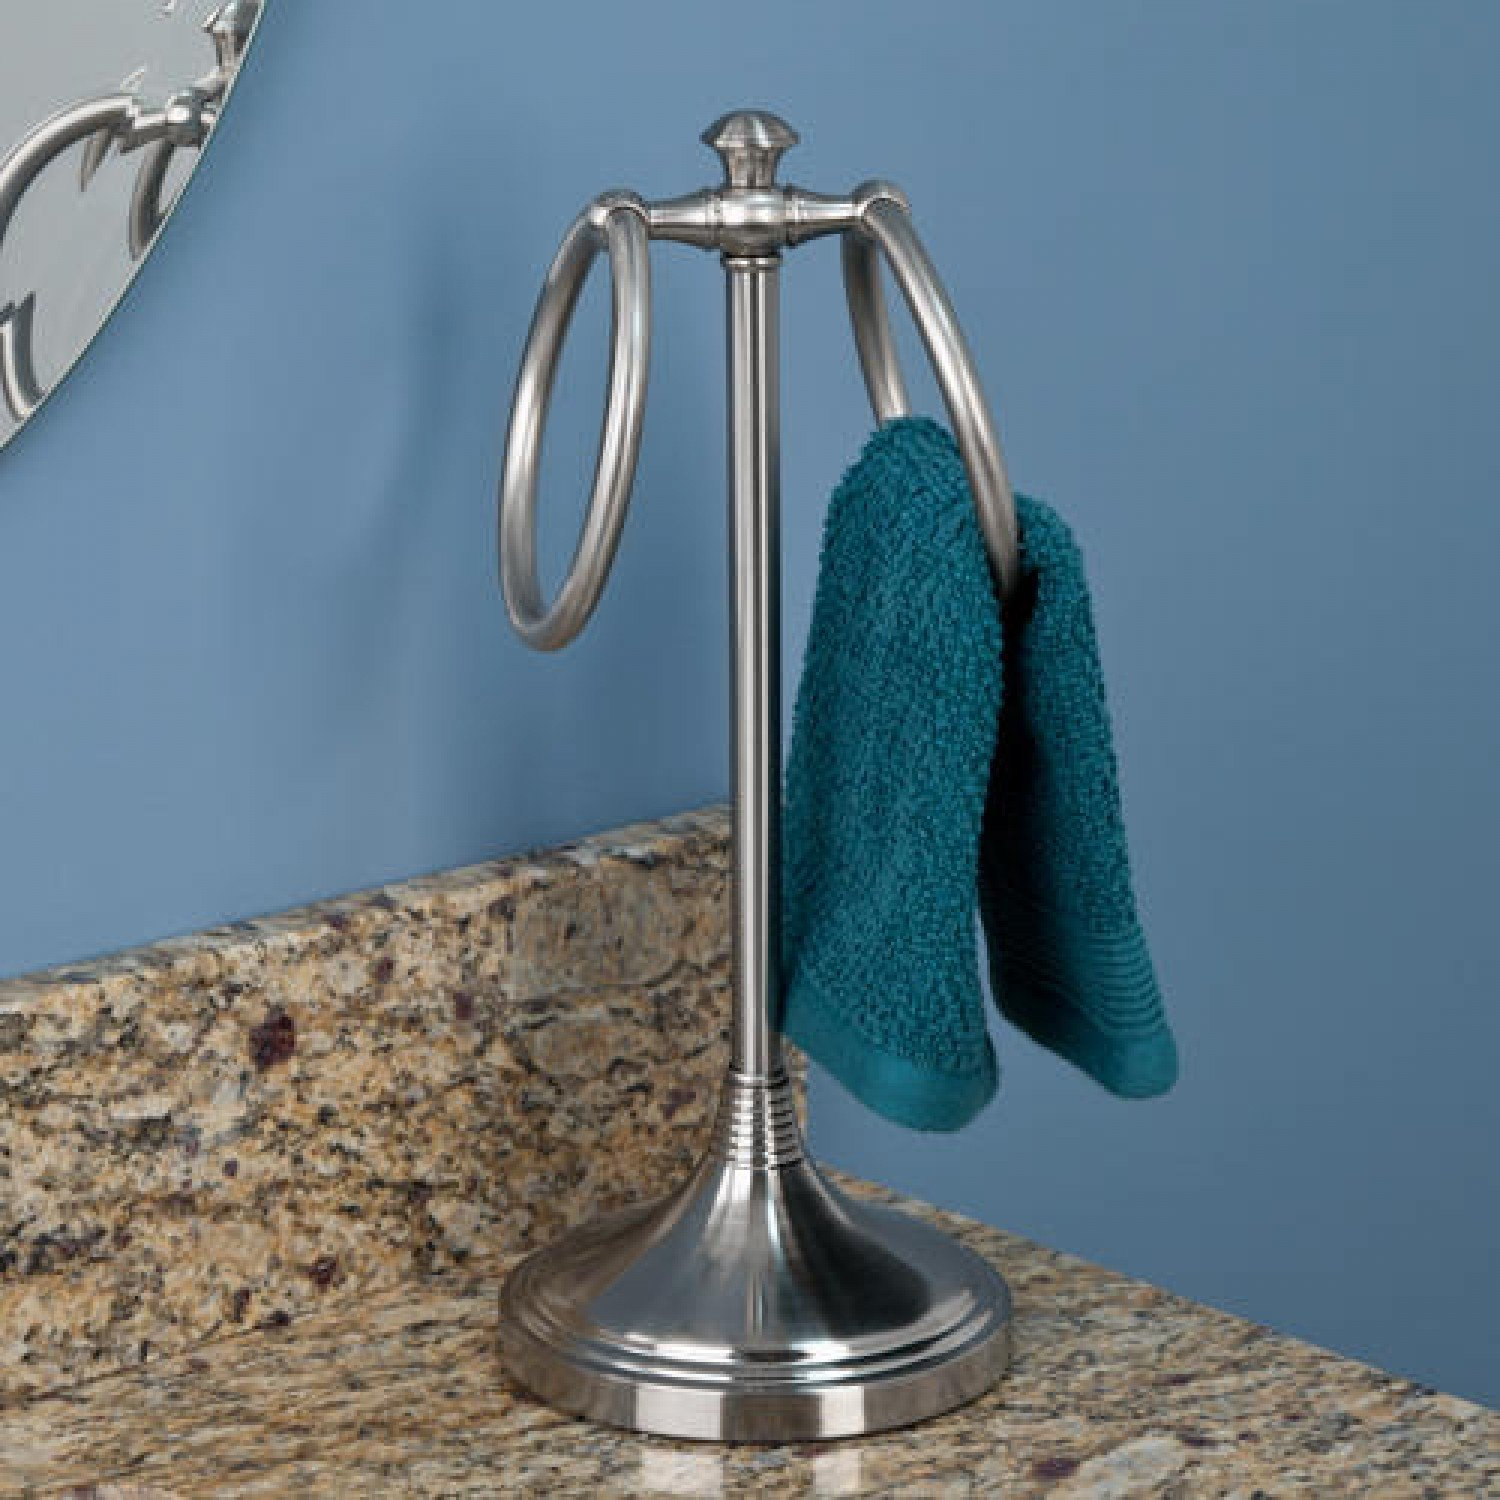 Naiture Steel Free Standing Countertop Towel Ring In Brushed Nickel Finish 50%OFF